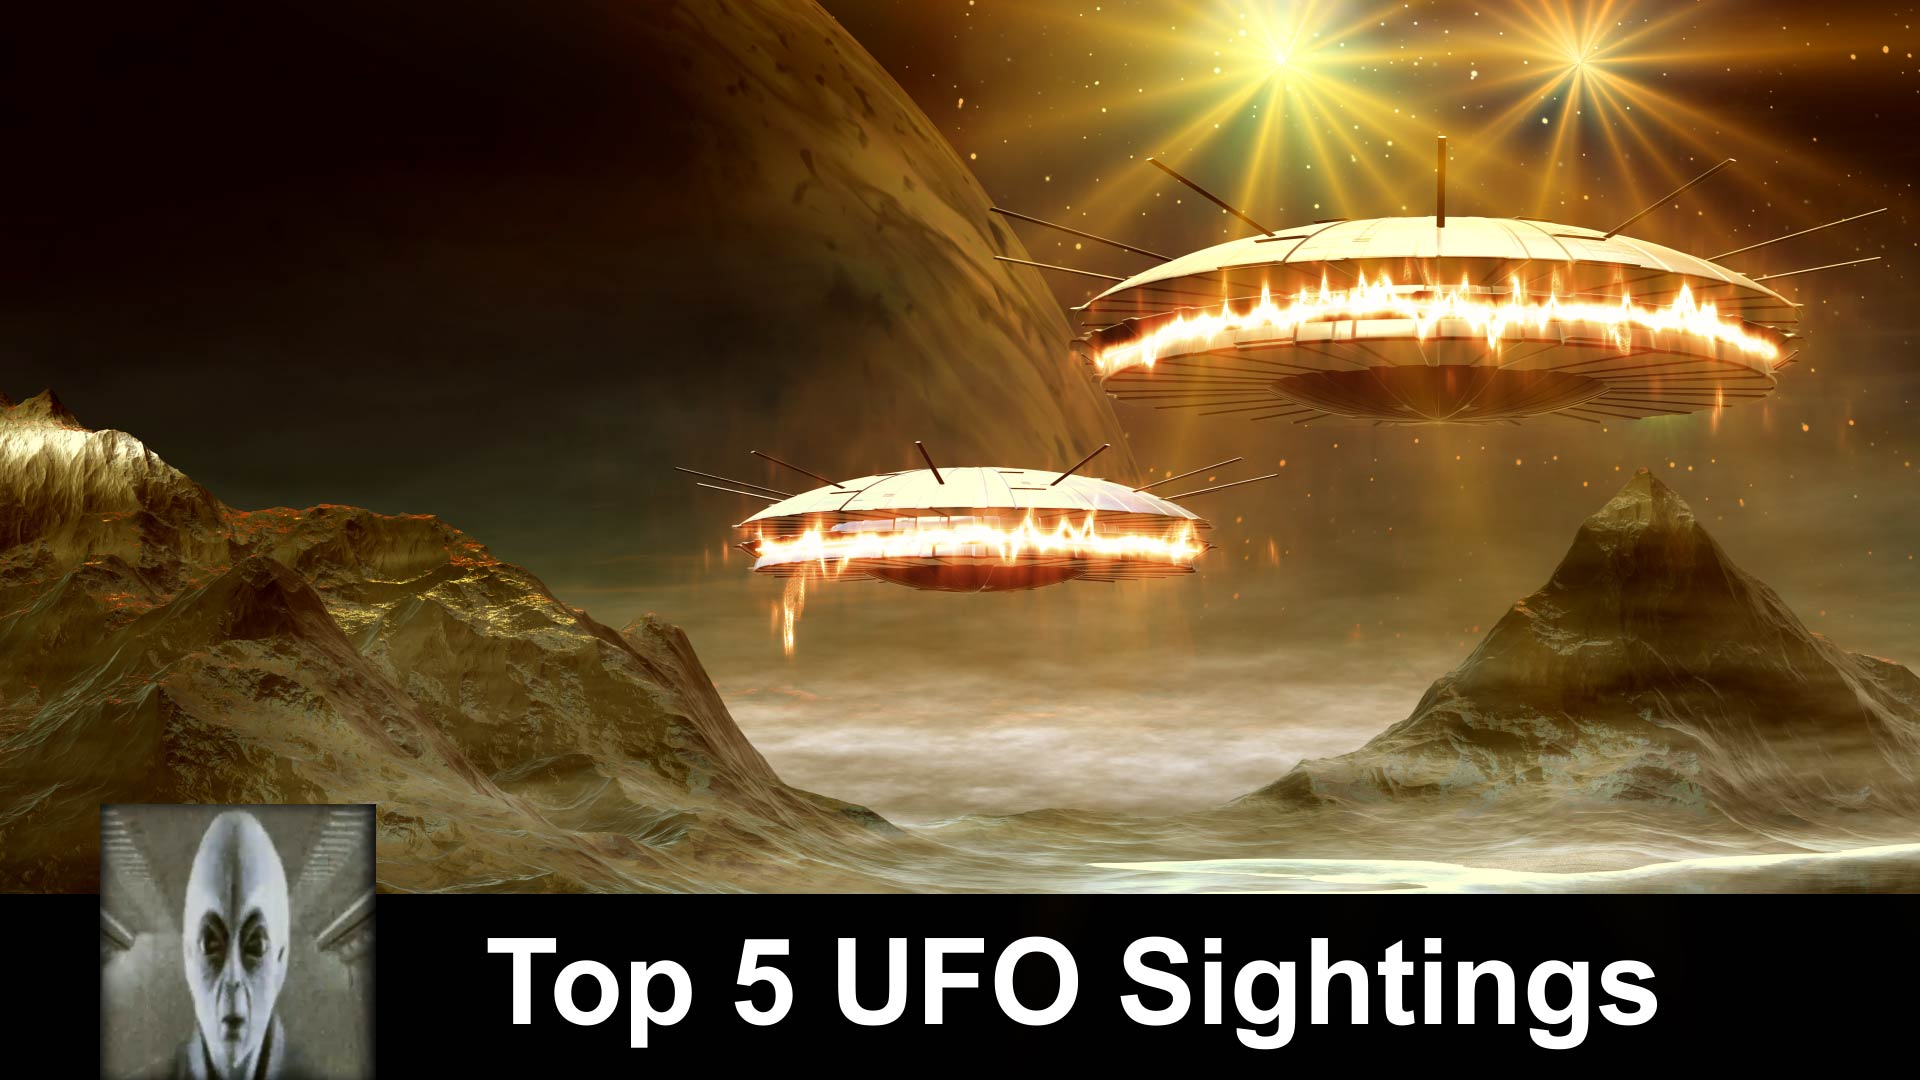 Top 5 UFO Sightings September 2018